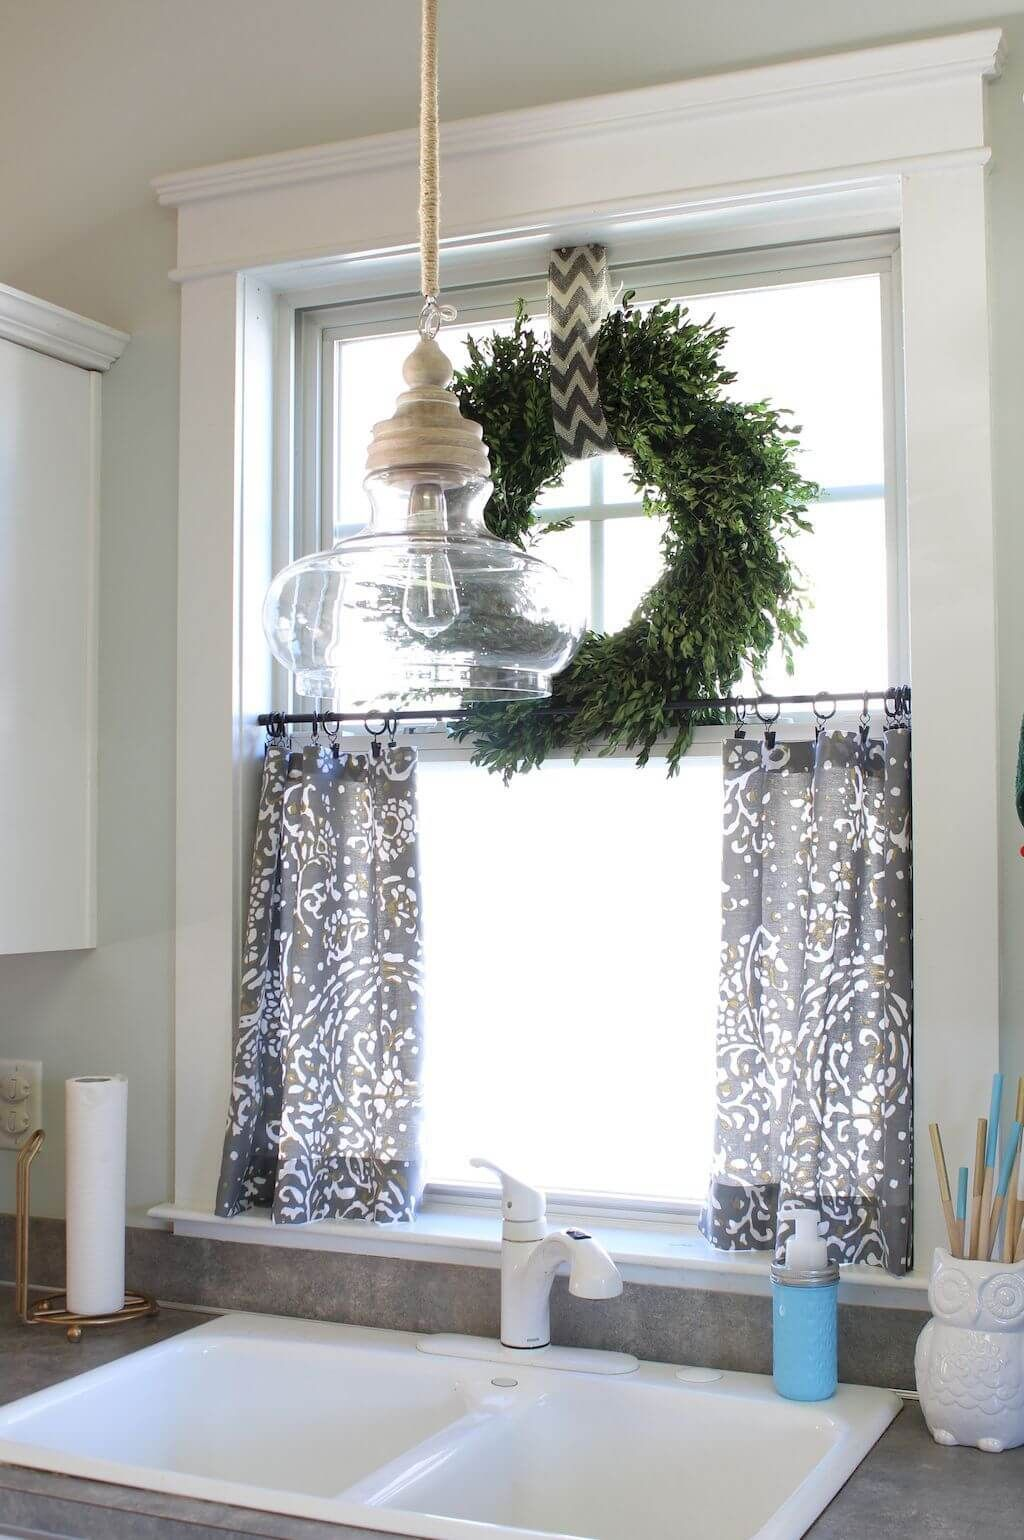 Dove Gray Café Curtains And A Wreath Half Window For Kitchen